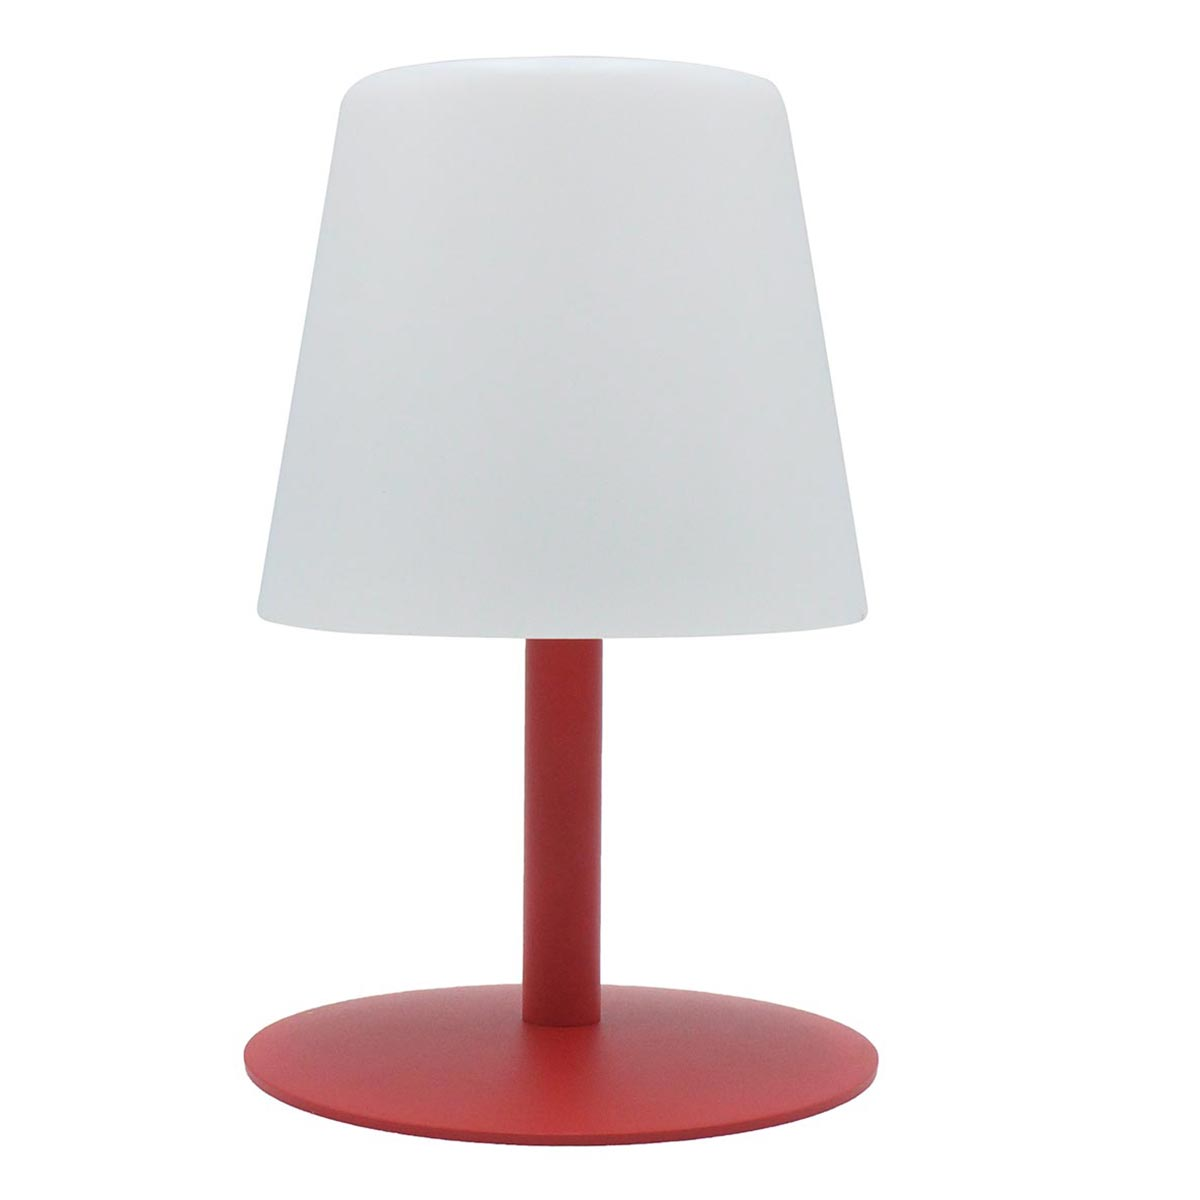 Lampe de table sans fil pied en acier rouge LED blanc chaud/blanc dimmable STANDY MINI Love H25cm26cm - REDDECO.com